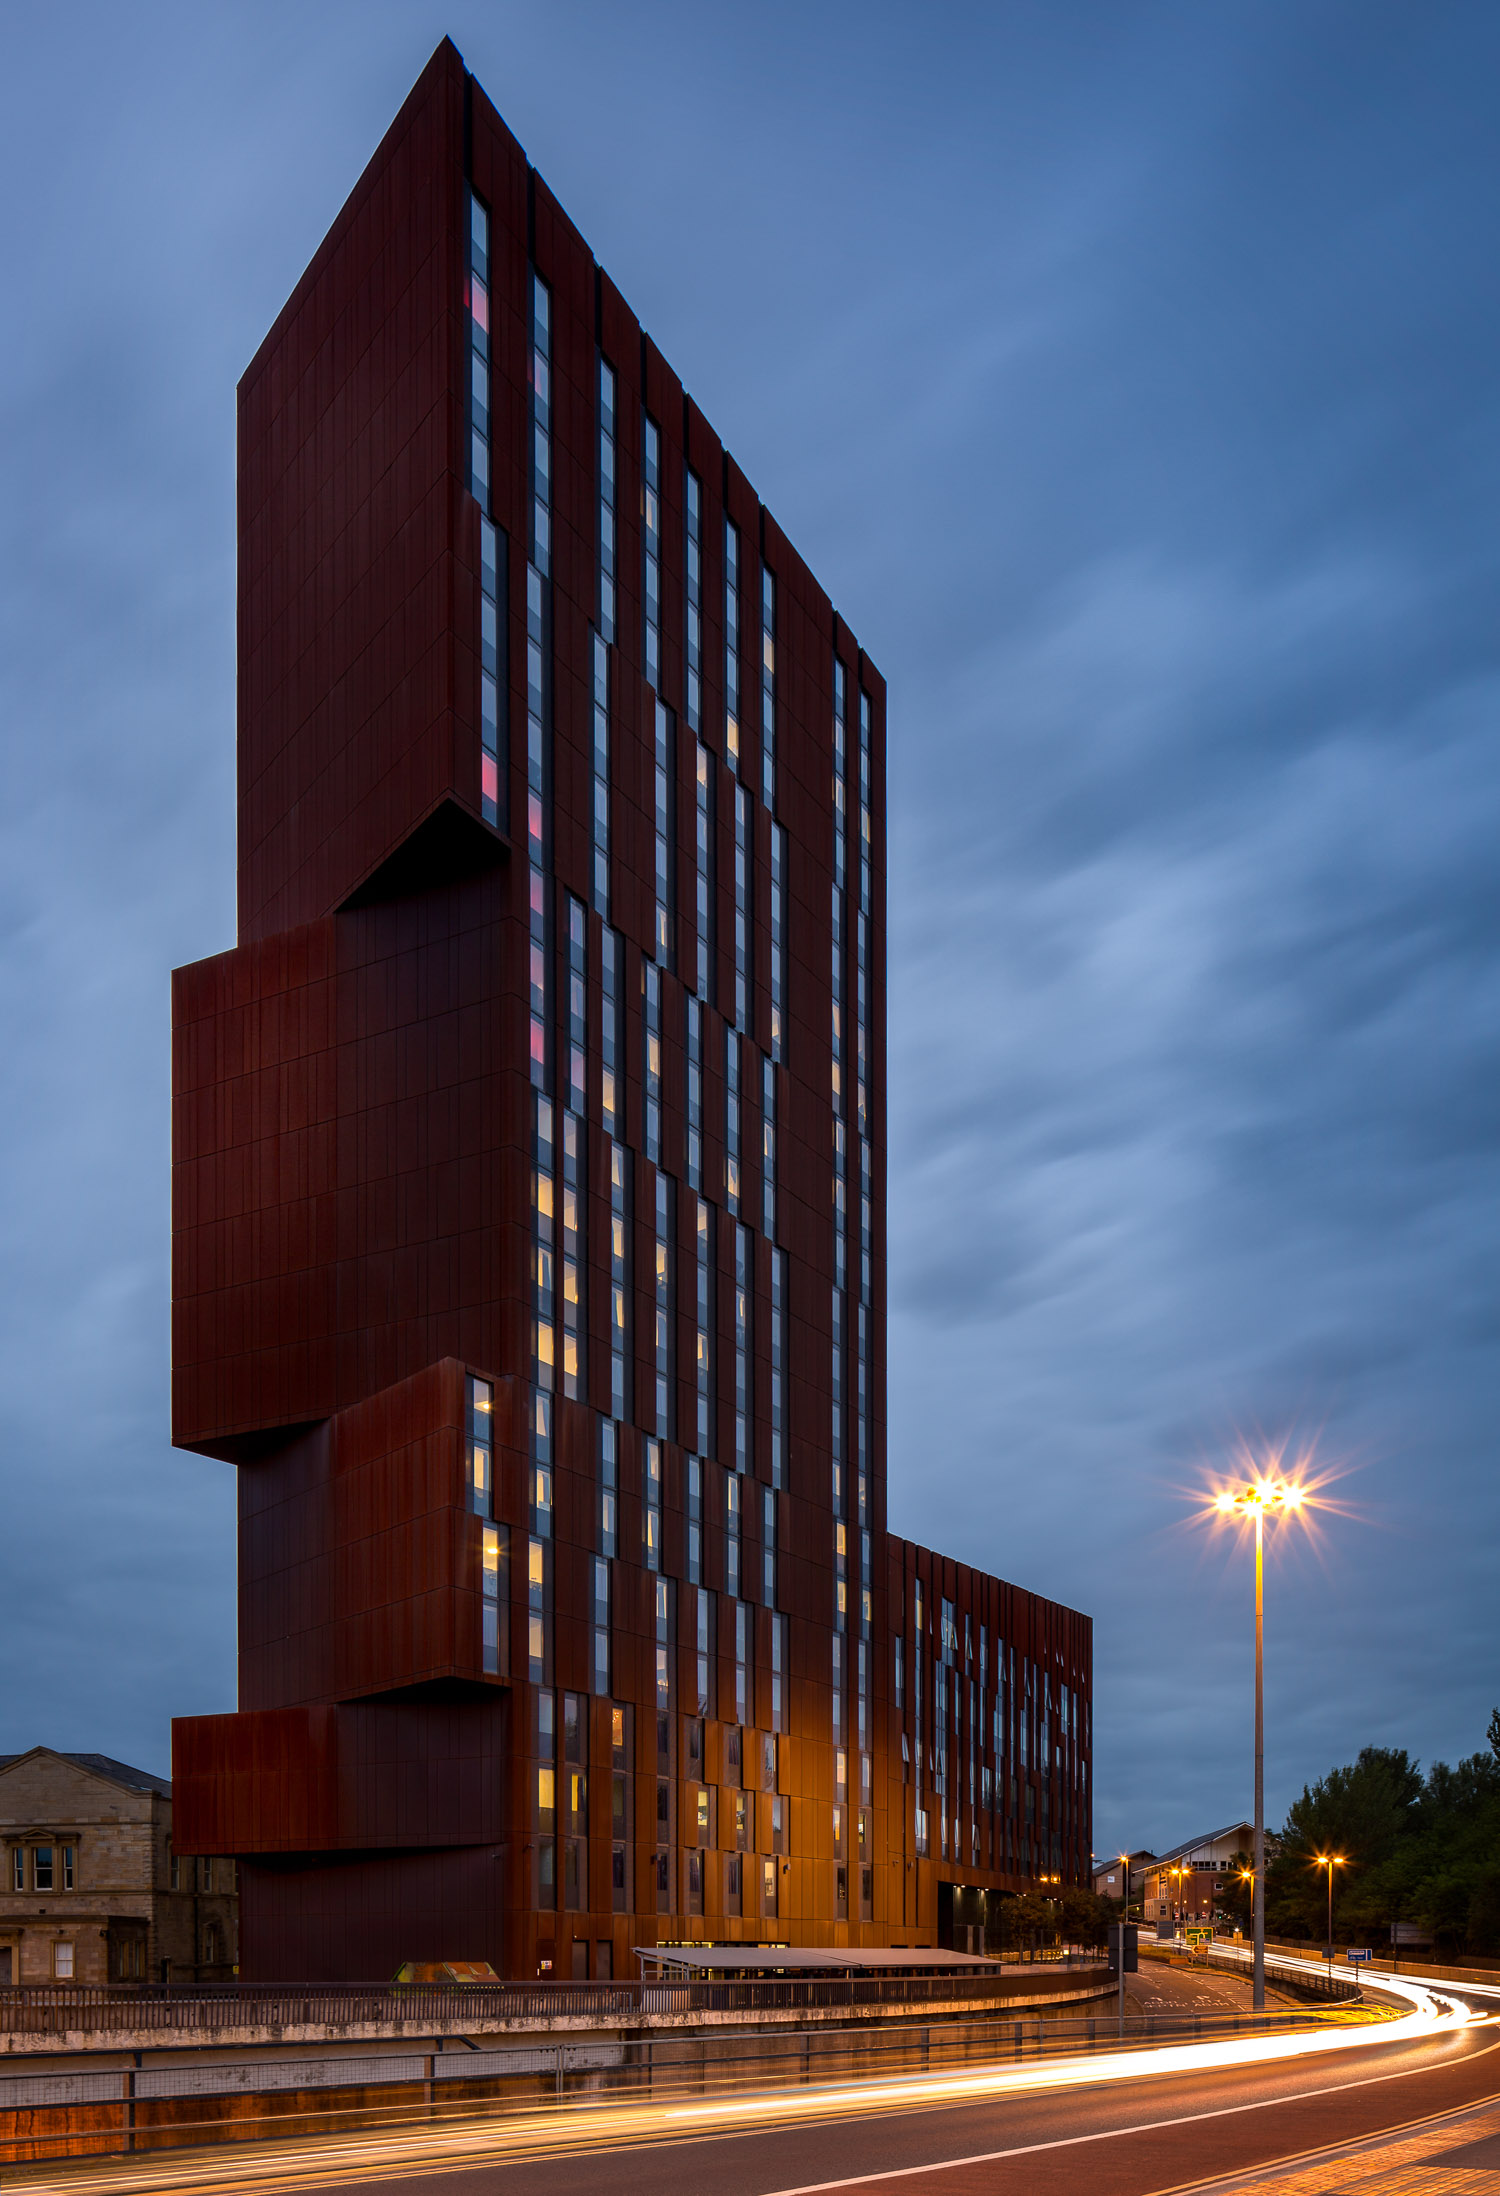 Broadcasting Tower, Leeds - Architectural Exterior Photography